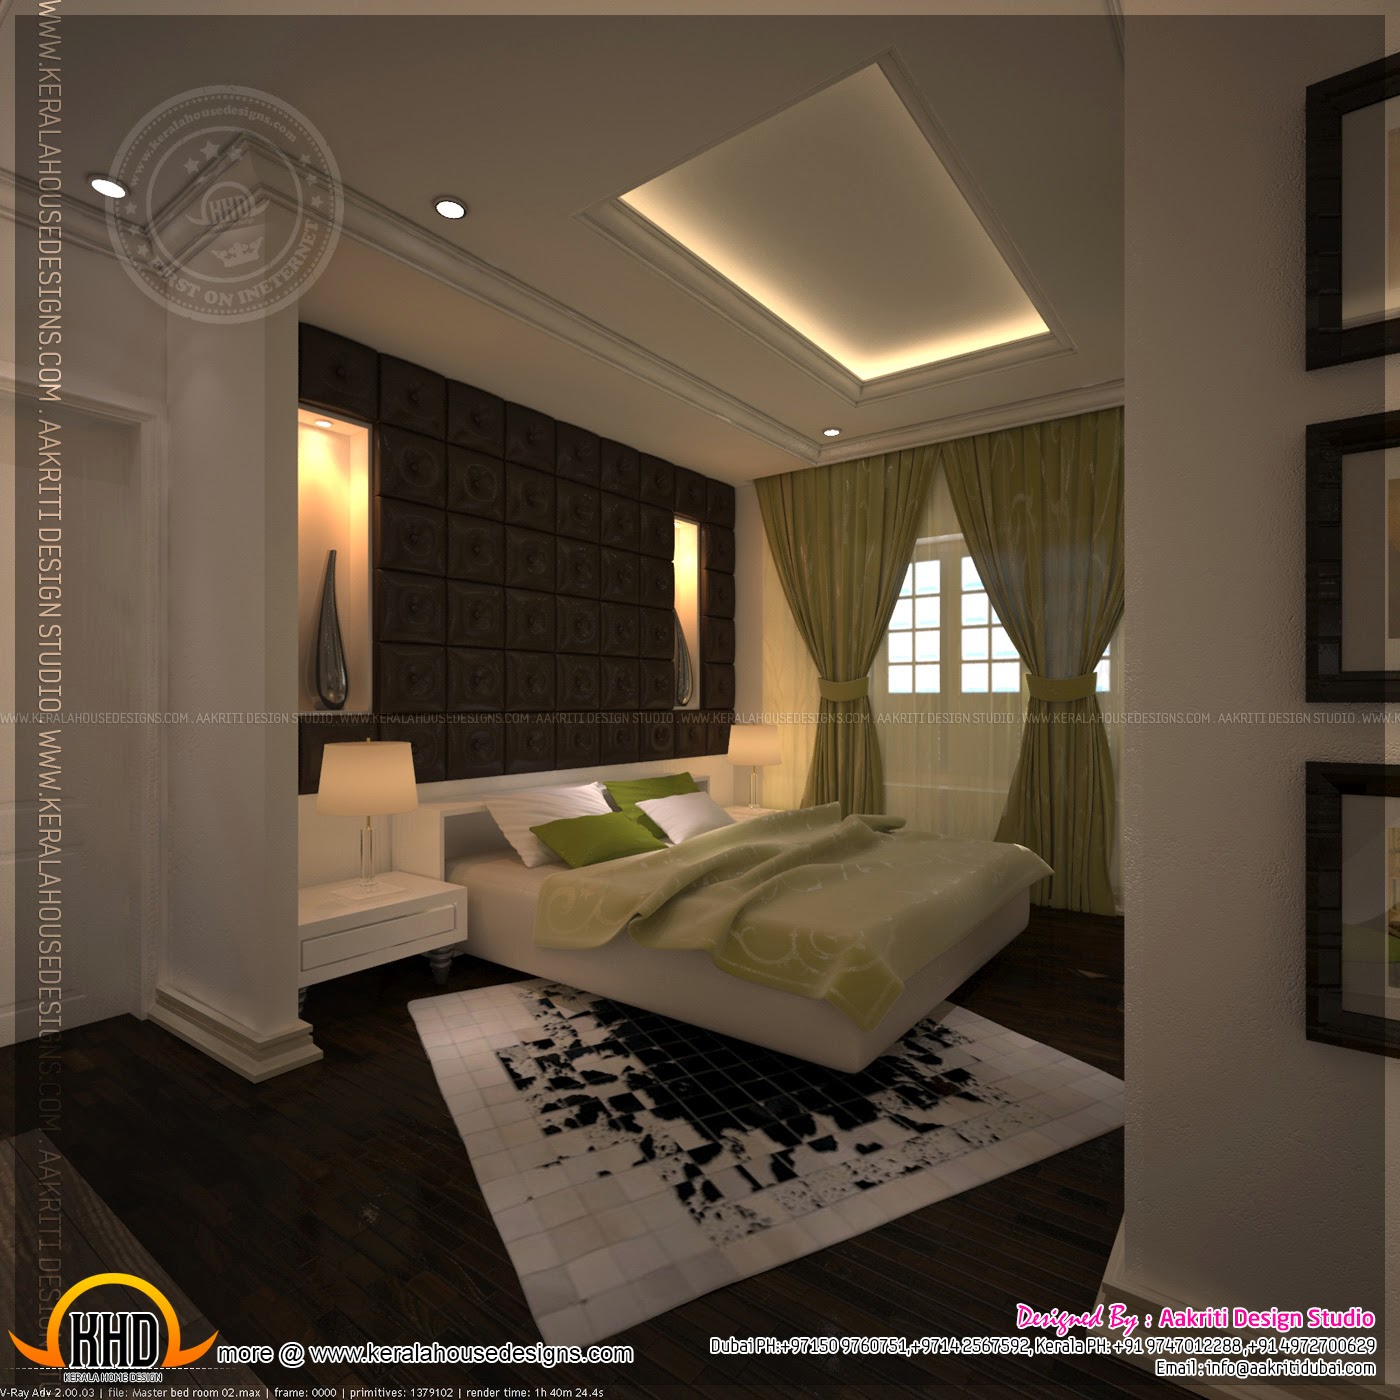 Master bedroom and bathroom interior design kerala home for Bedroom interior design pictures